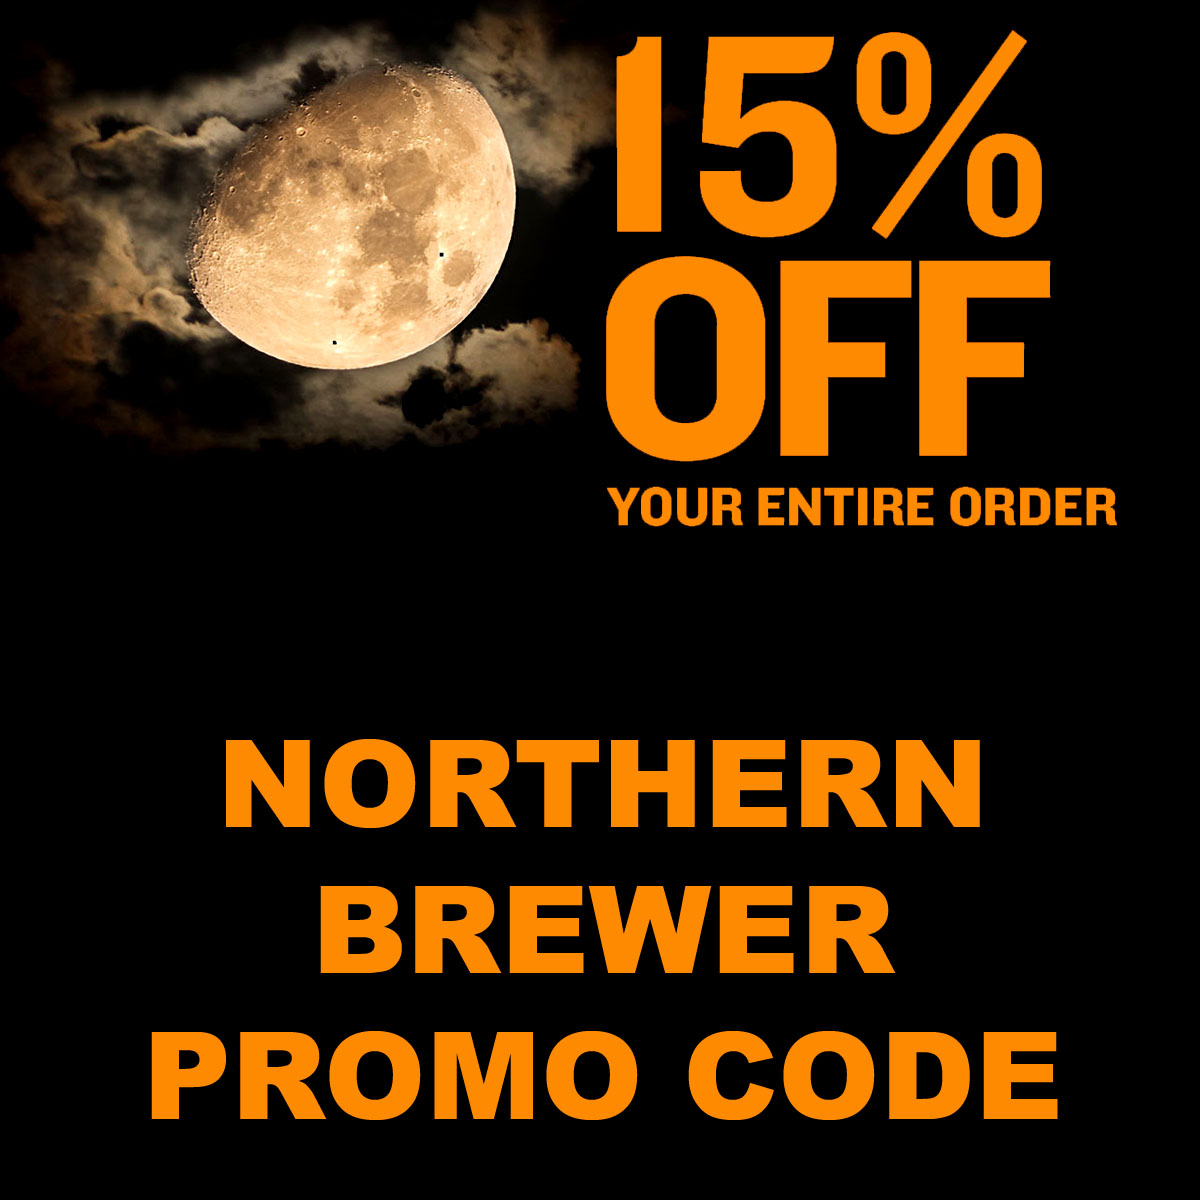 Home Wine Making Coupon Codes for Save 15% Site Wide at Northern Brewer With This Northern Brewer Promo Code Coupon Code